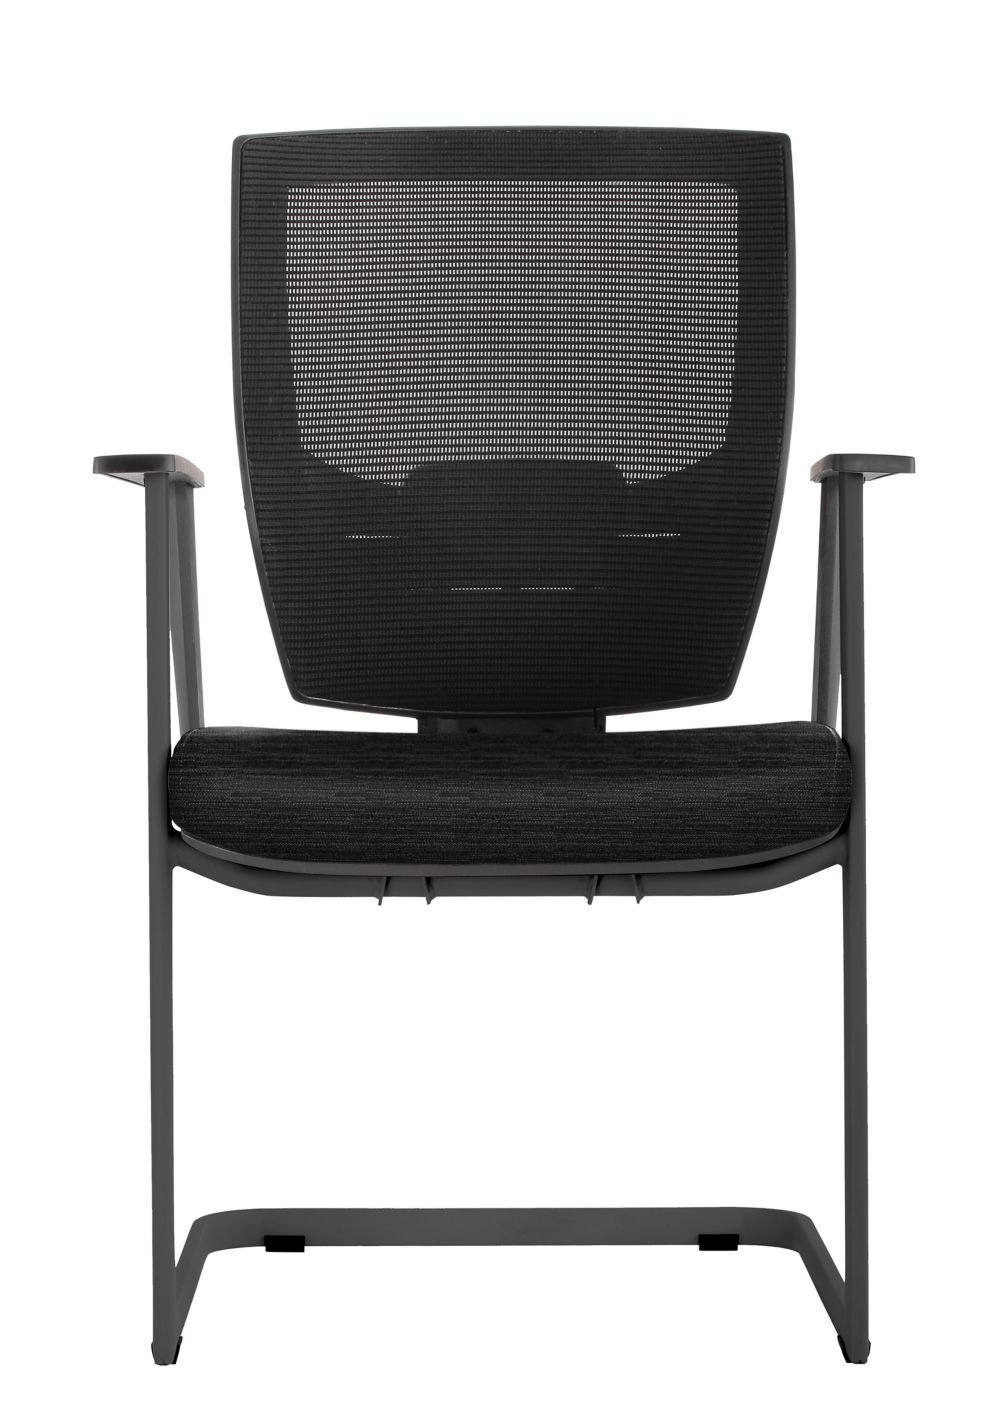 """Set of 2 Cantilever Guest Chair with Memory Foam Patterned Fabric Seat Dimensions: 23.25""""W x 24.5""""D x 38.5""""H Weight: 42 lbs. Black Mesh Back/Jet Winslow Culp Fabric Seat/Black Painted Frame"""